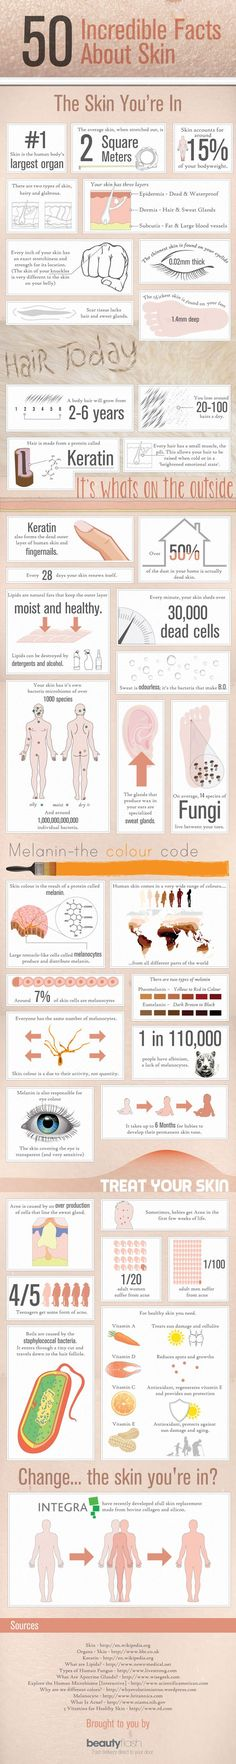 A zillion awesome facts about skin and hair. It's better than I just made it sound.